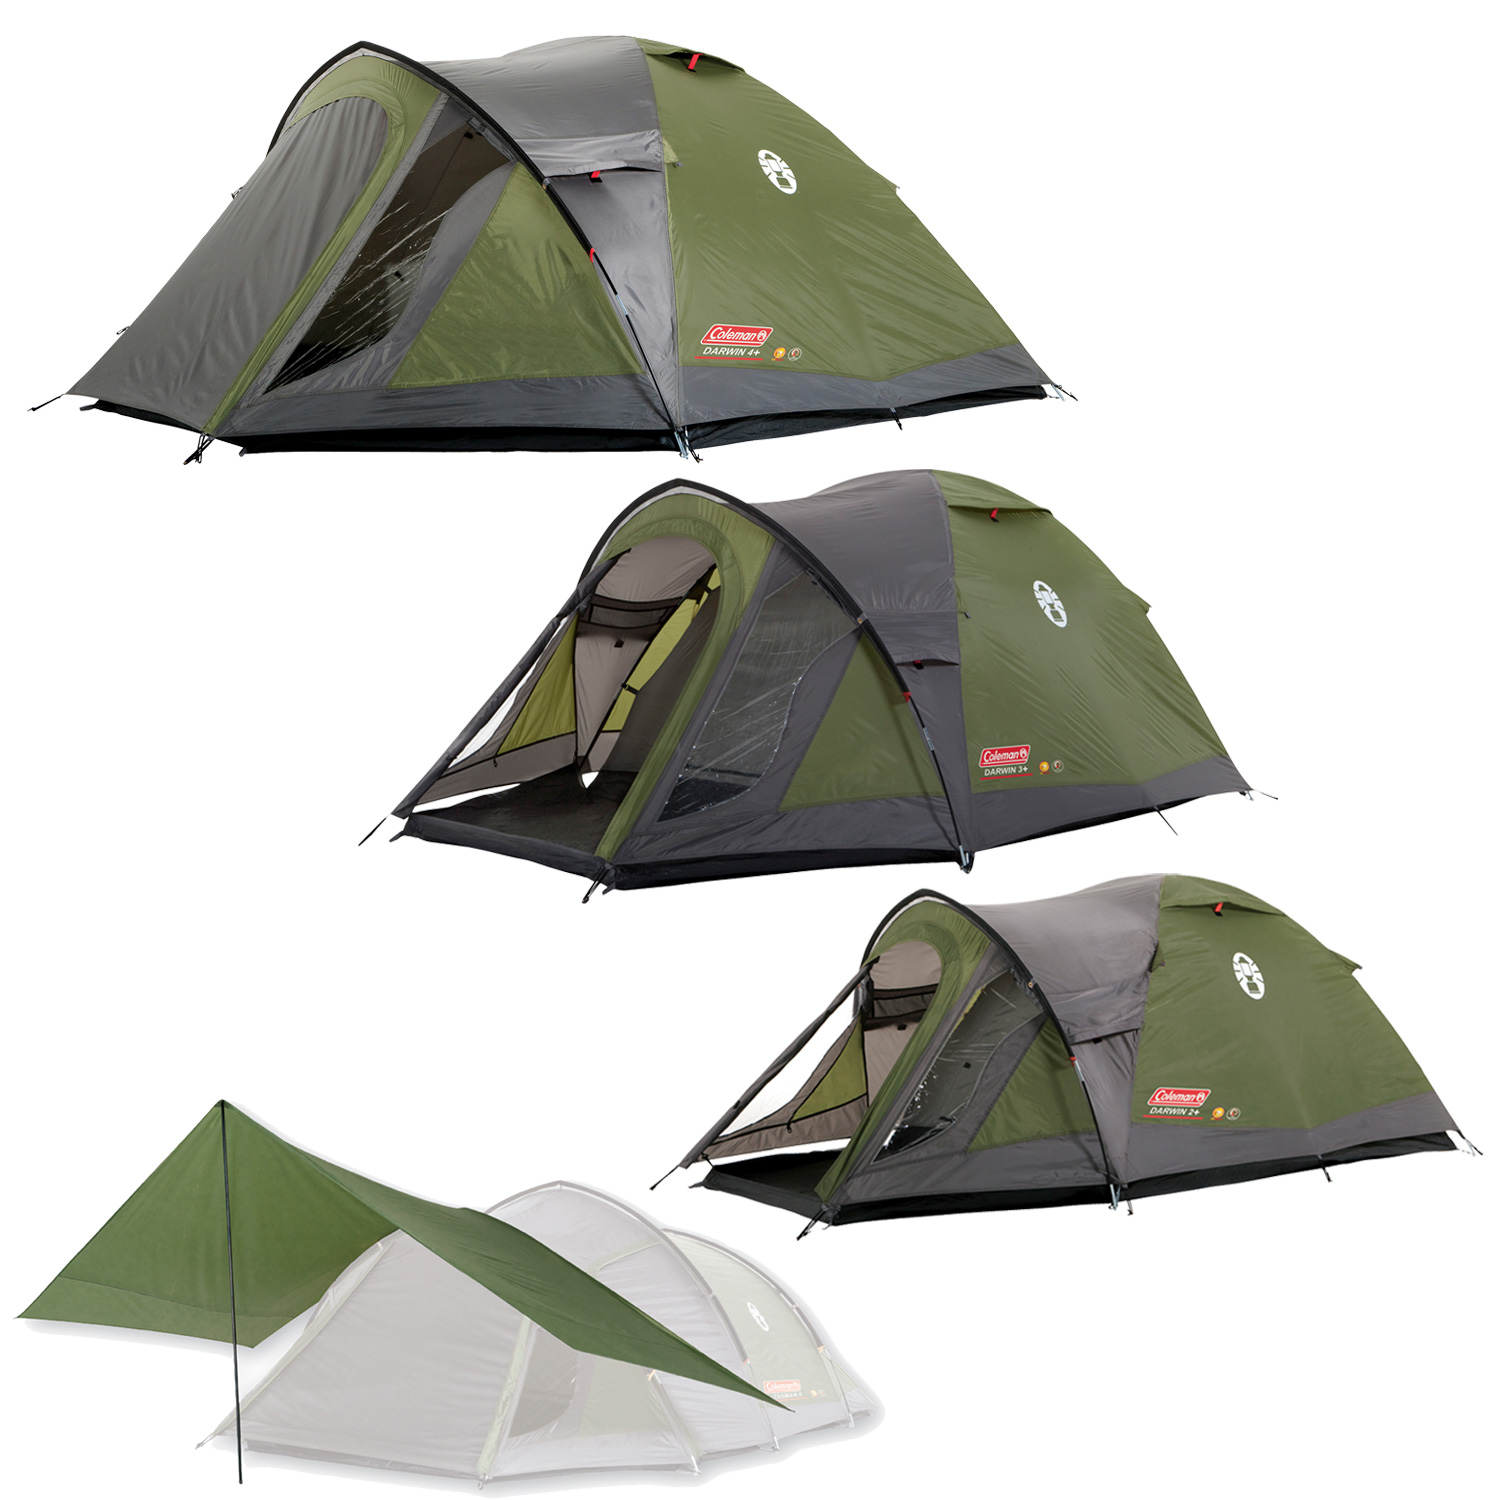 31b9ec069 Details about Coleman Darwin Plus Tent 2 3 4 Man Person Dome Tent With  Extended Porch Camping